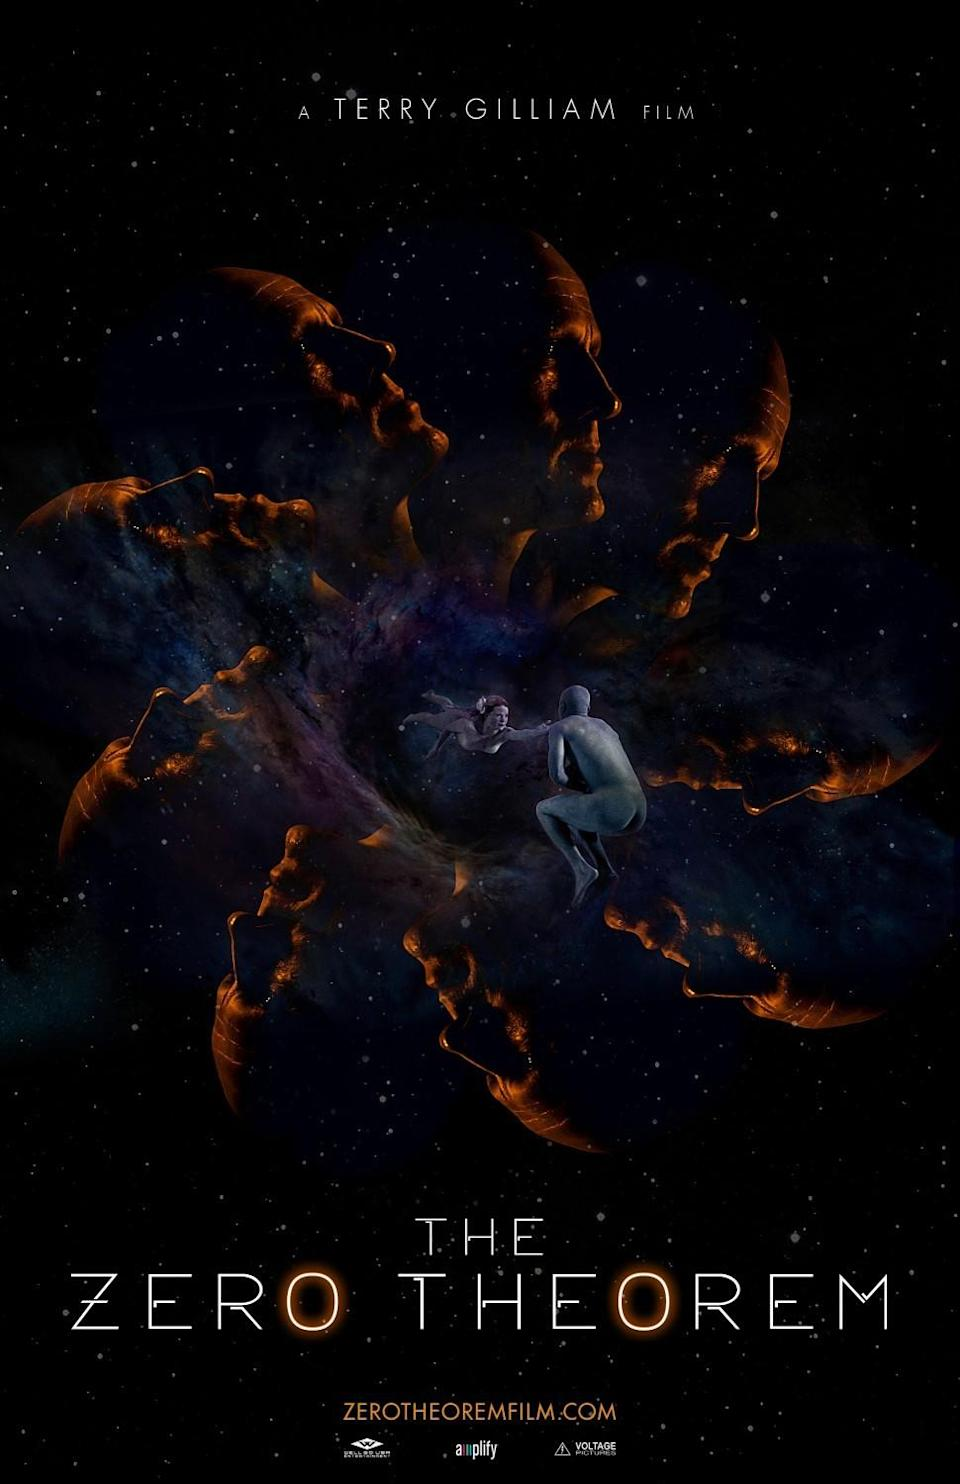 <p><b>Why it was banned:</b> Christoph Waltz's bare bottom, floating through space, upsetting lots of easily-offended aliens. Even though Waltz's bum is barely visible in the poster, and it's about as far from sexual as a bum is possible to get, the MPAA still refused to approve the poster. Party poopers.</p>